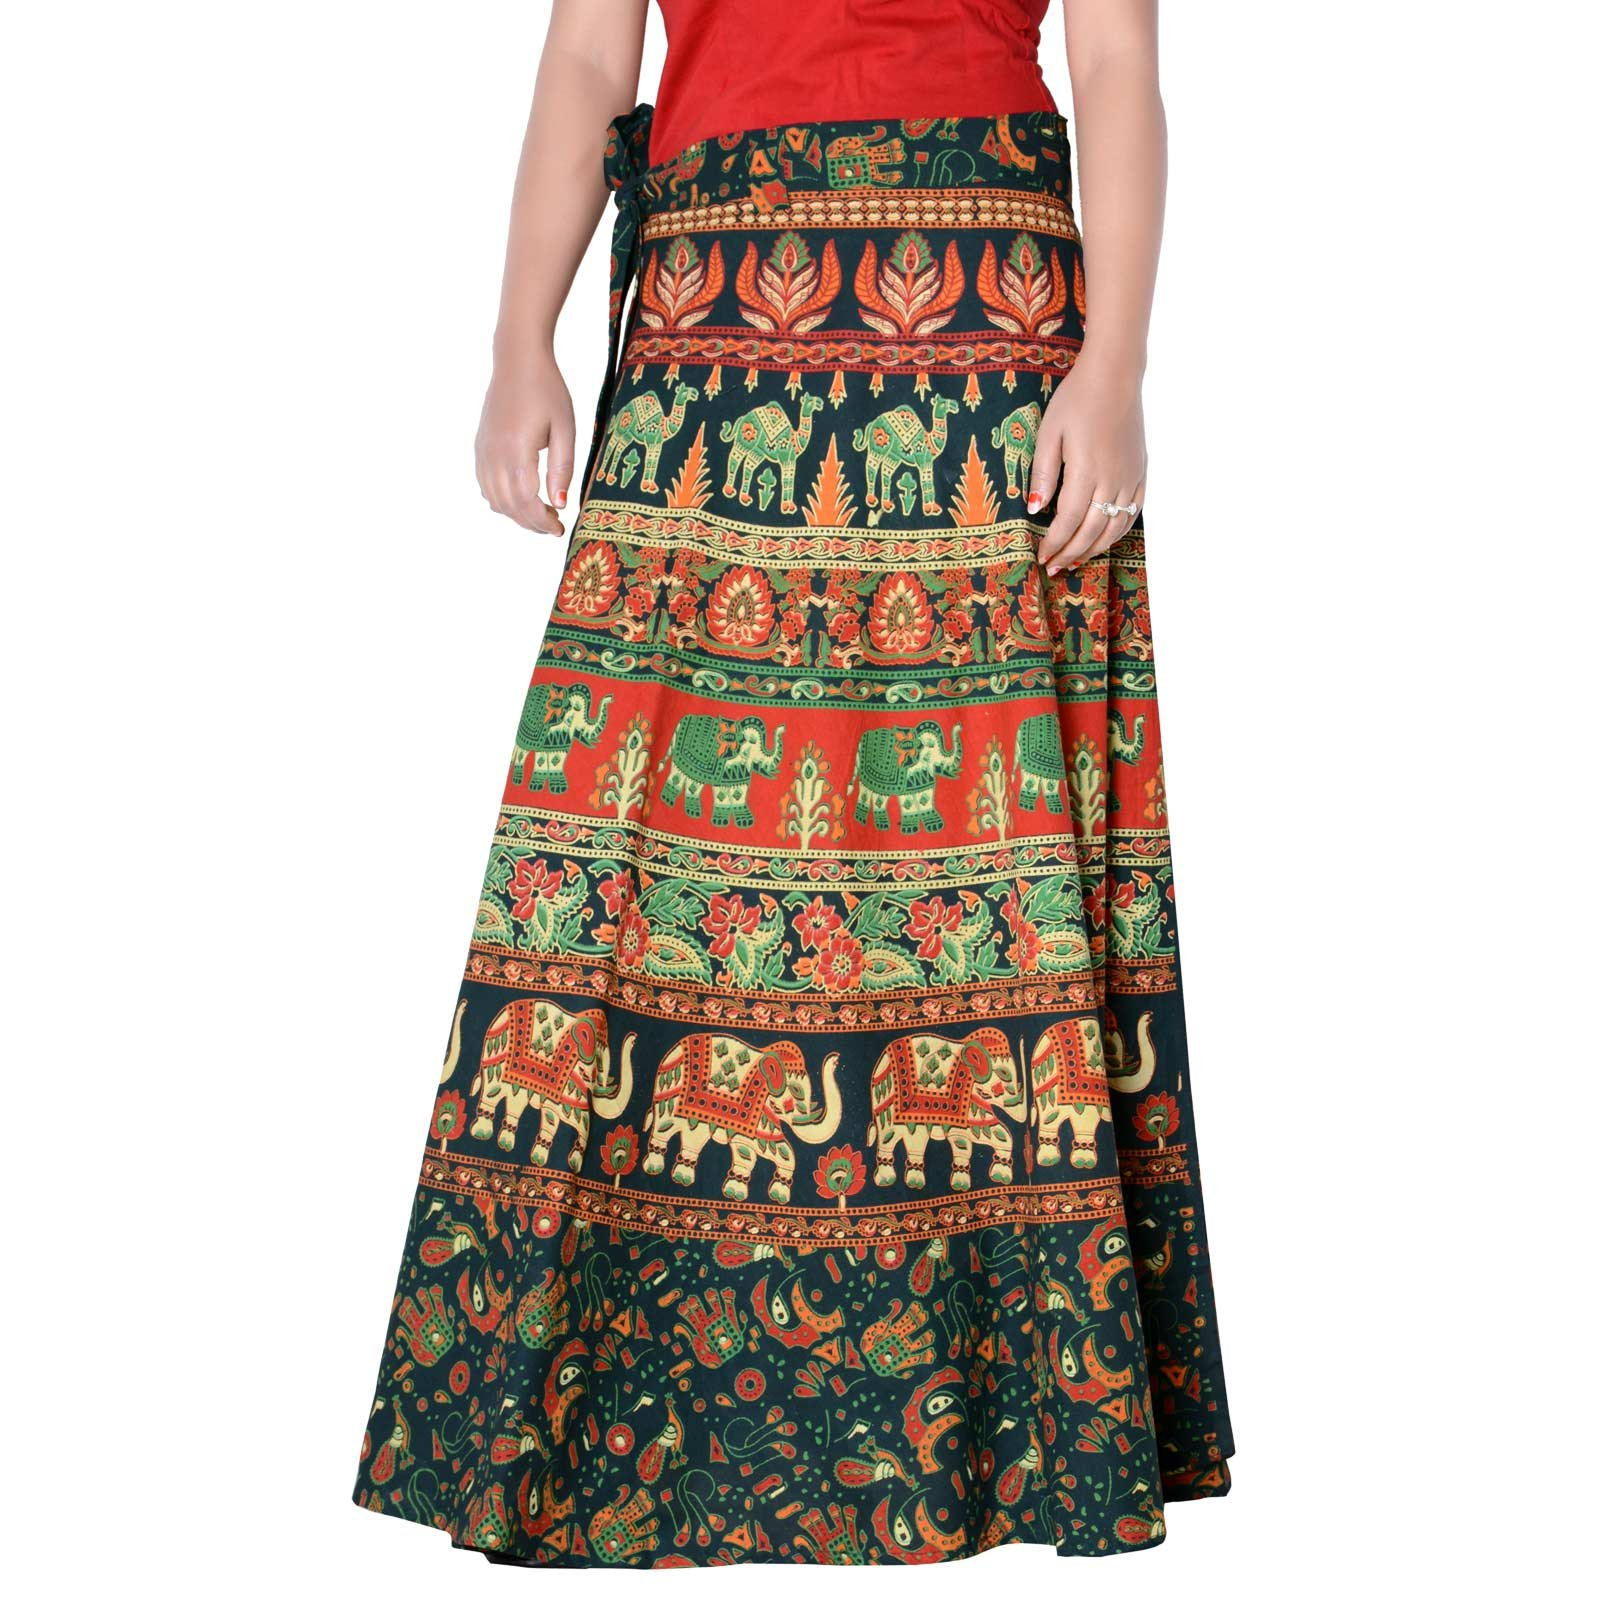 Vintage Style Cotton Printed Rajasthani Badmeri Wrap Around Green Color Free Size Skirt 36 Length Skirt D1 by Sttoffa